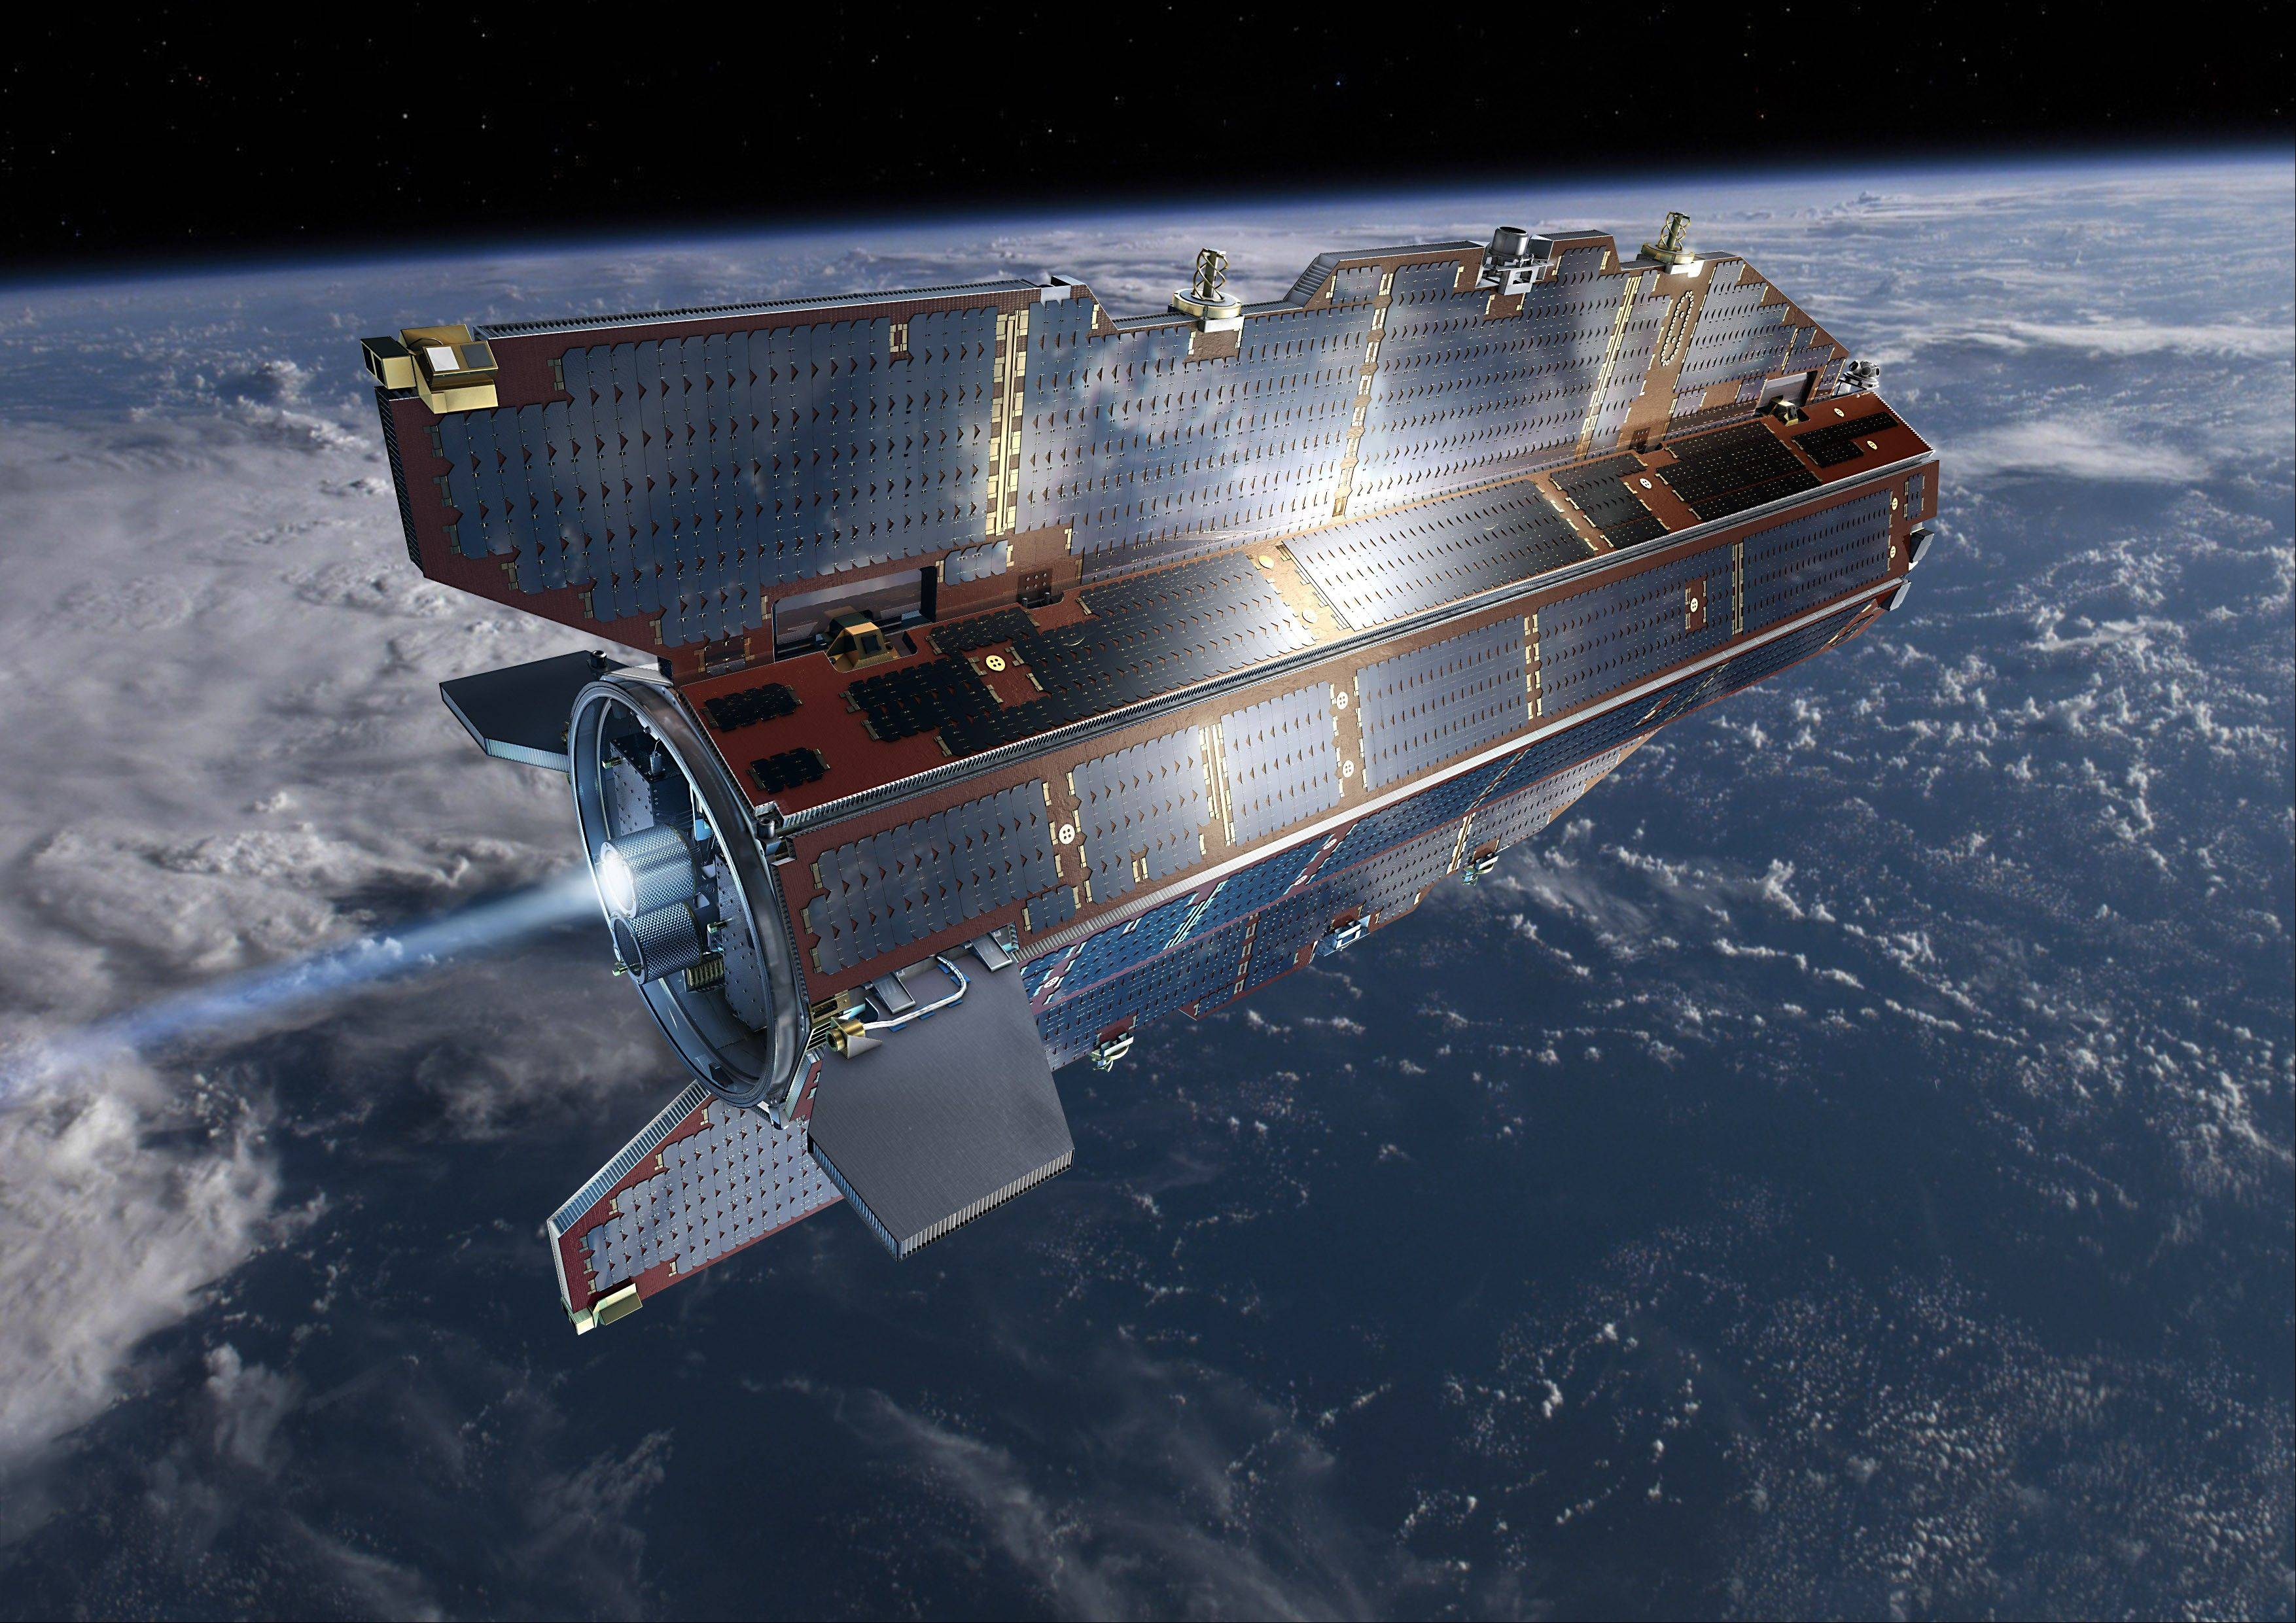 ASSOCIATED PRESS/European Space Agency The European Space Agency research satellite GOCE ran out of fuel while in orbit and is likely to re-enter the Earth�s atmosphere today. Where and when � and how much of it will hit the Earth�s surface � is largely guesswork.